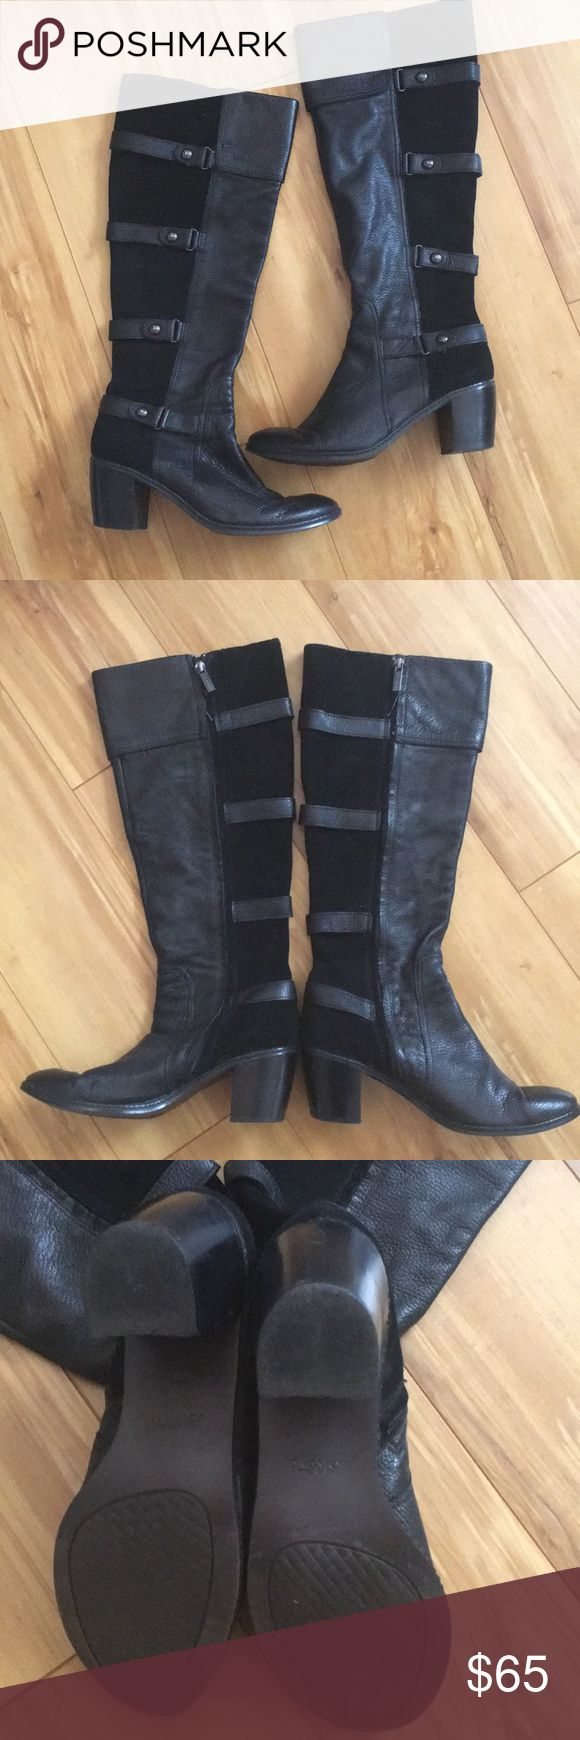 8 Circa Joan David Boots 8 Circa Joan David Boots. Size 8 1/2. Black. In great used condition. 8 Circa Joan David Shoes